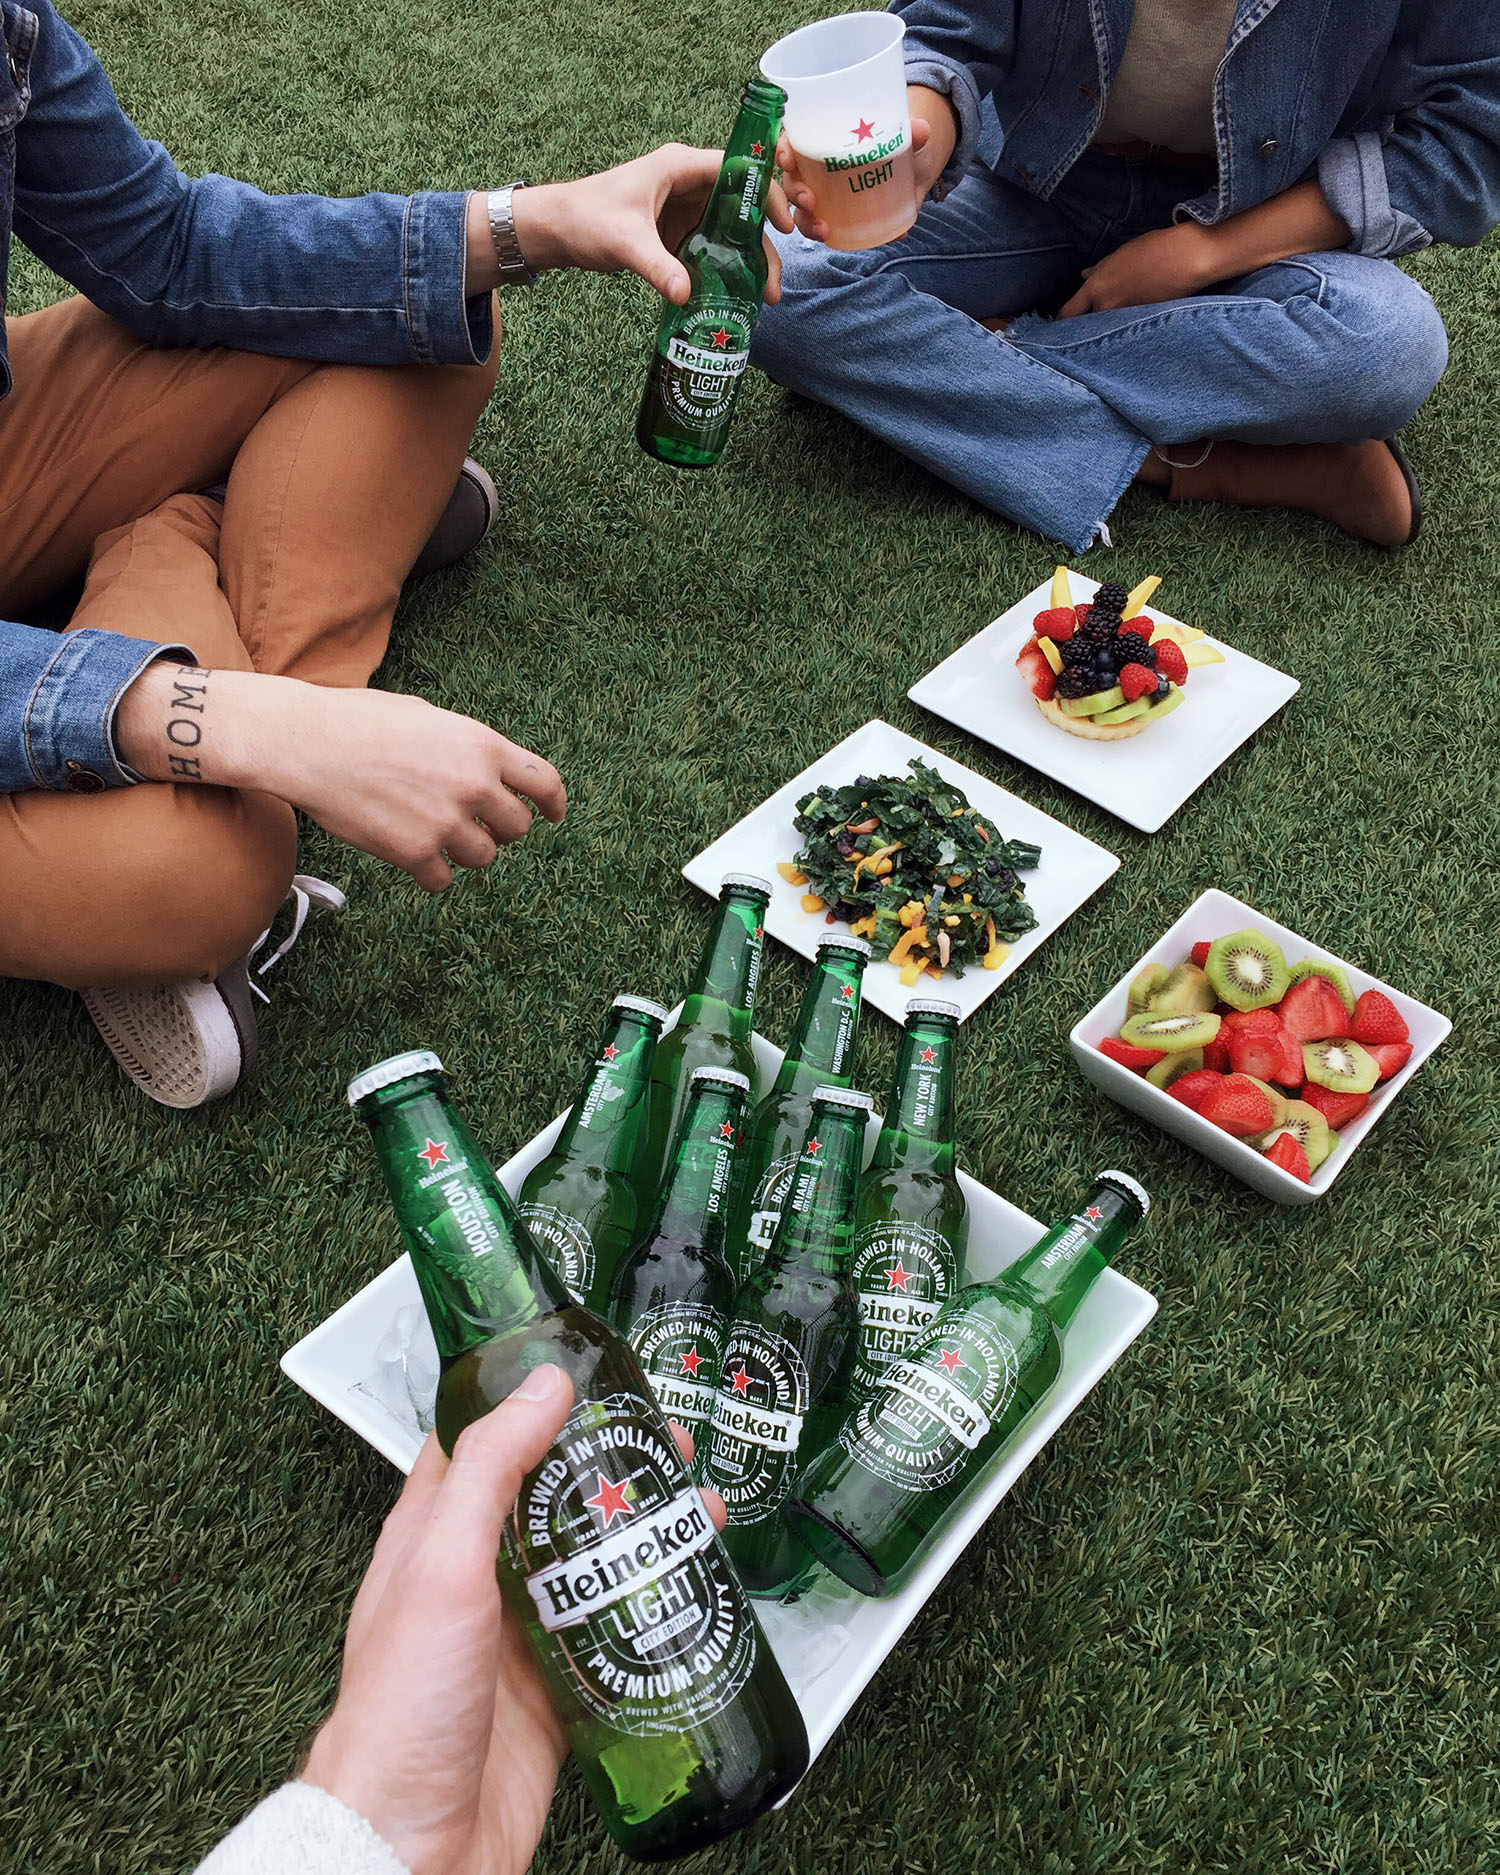 heineken-light-beer